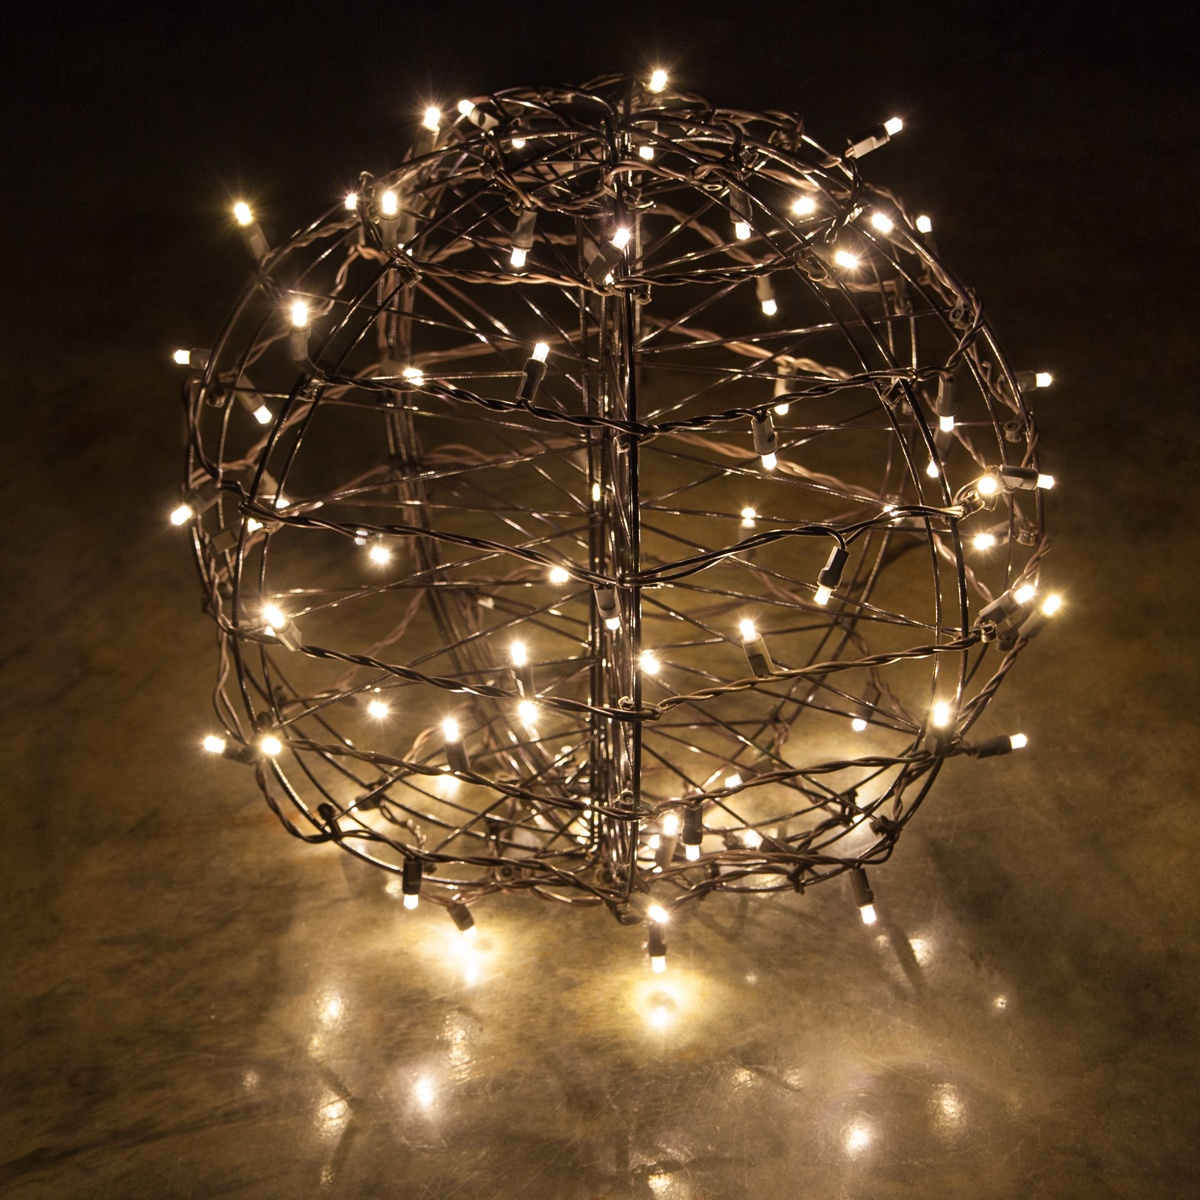 warm white led christmas light ball fold flat brown frame - Christmas Light Balls For Trees